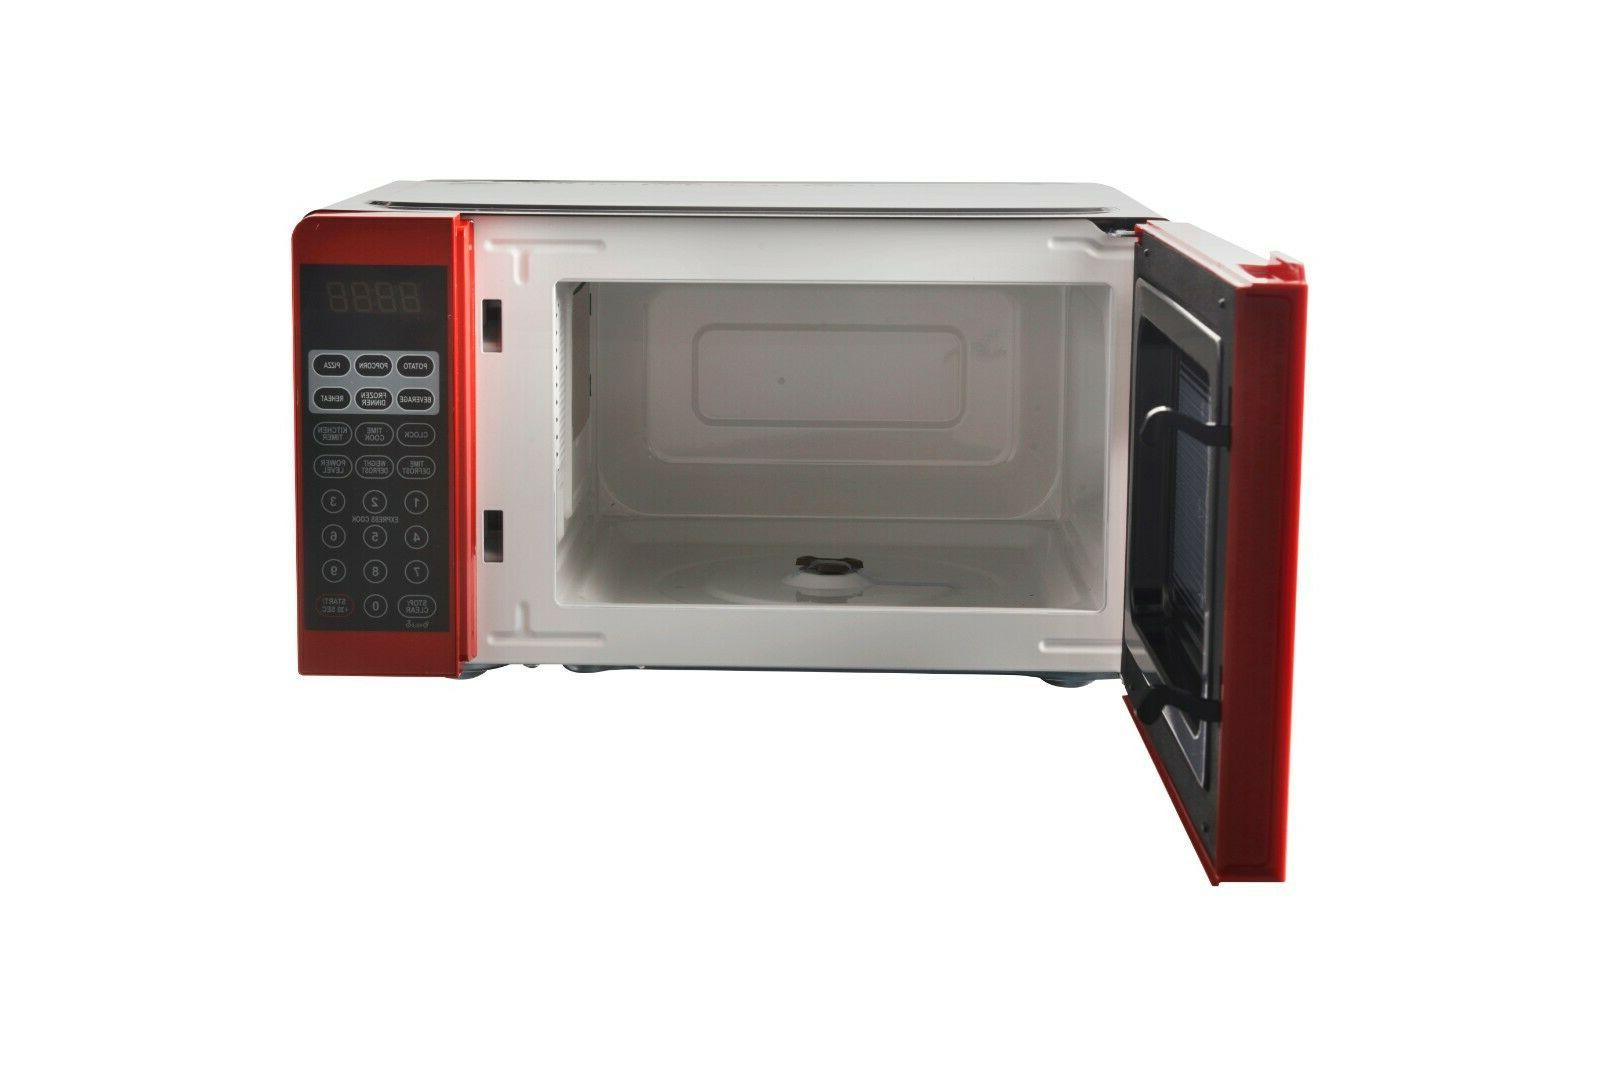 Countertop Microwave Kitchen Home Office Dorm Digital LED 700W